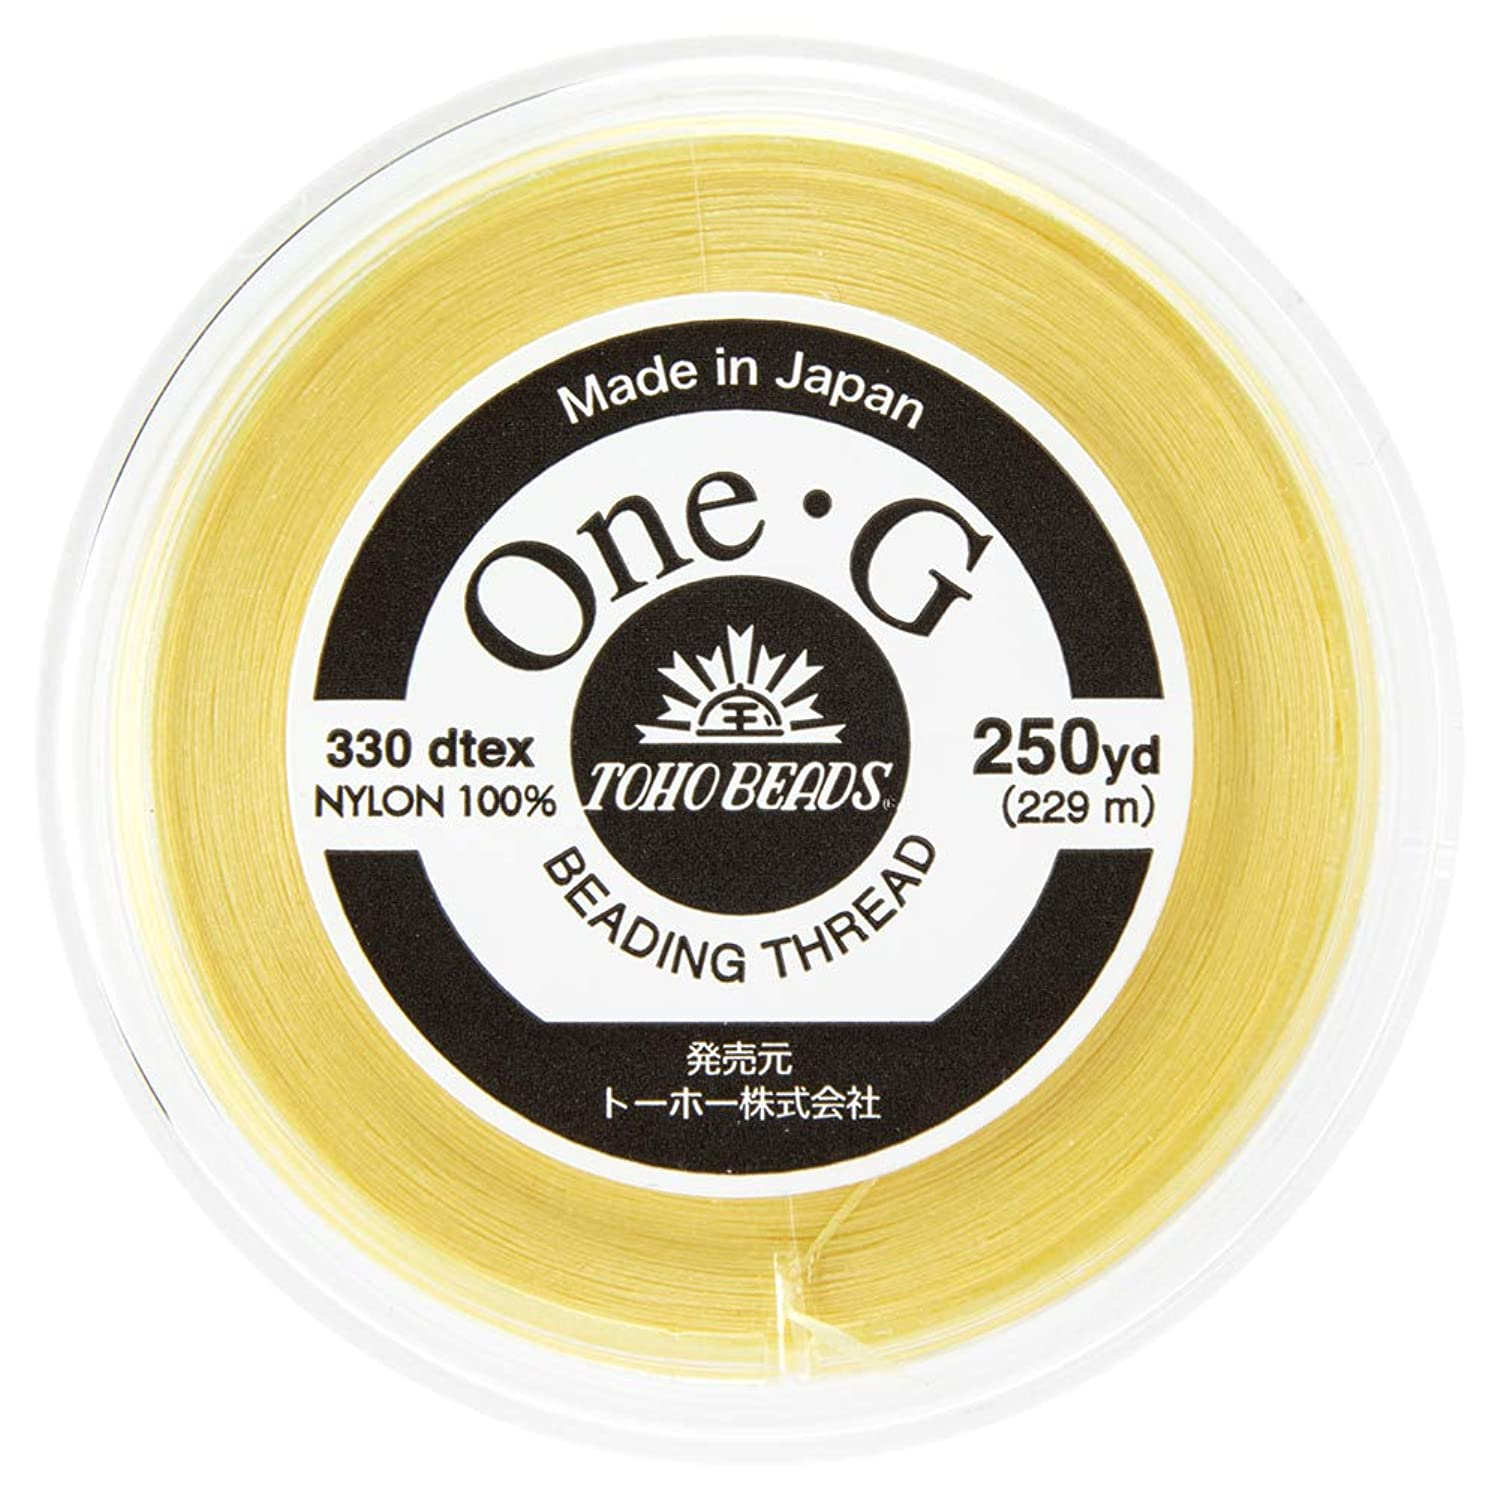 Toho One-G Beading Thread, 250-Yard (228-Meter) Spool - Lt Yellow